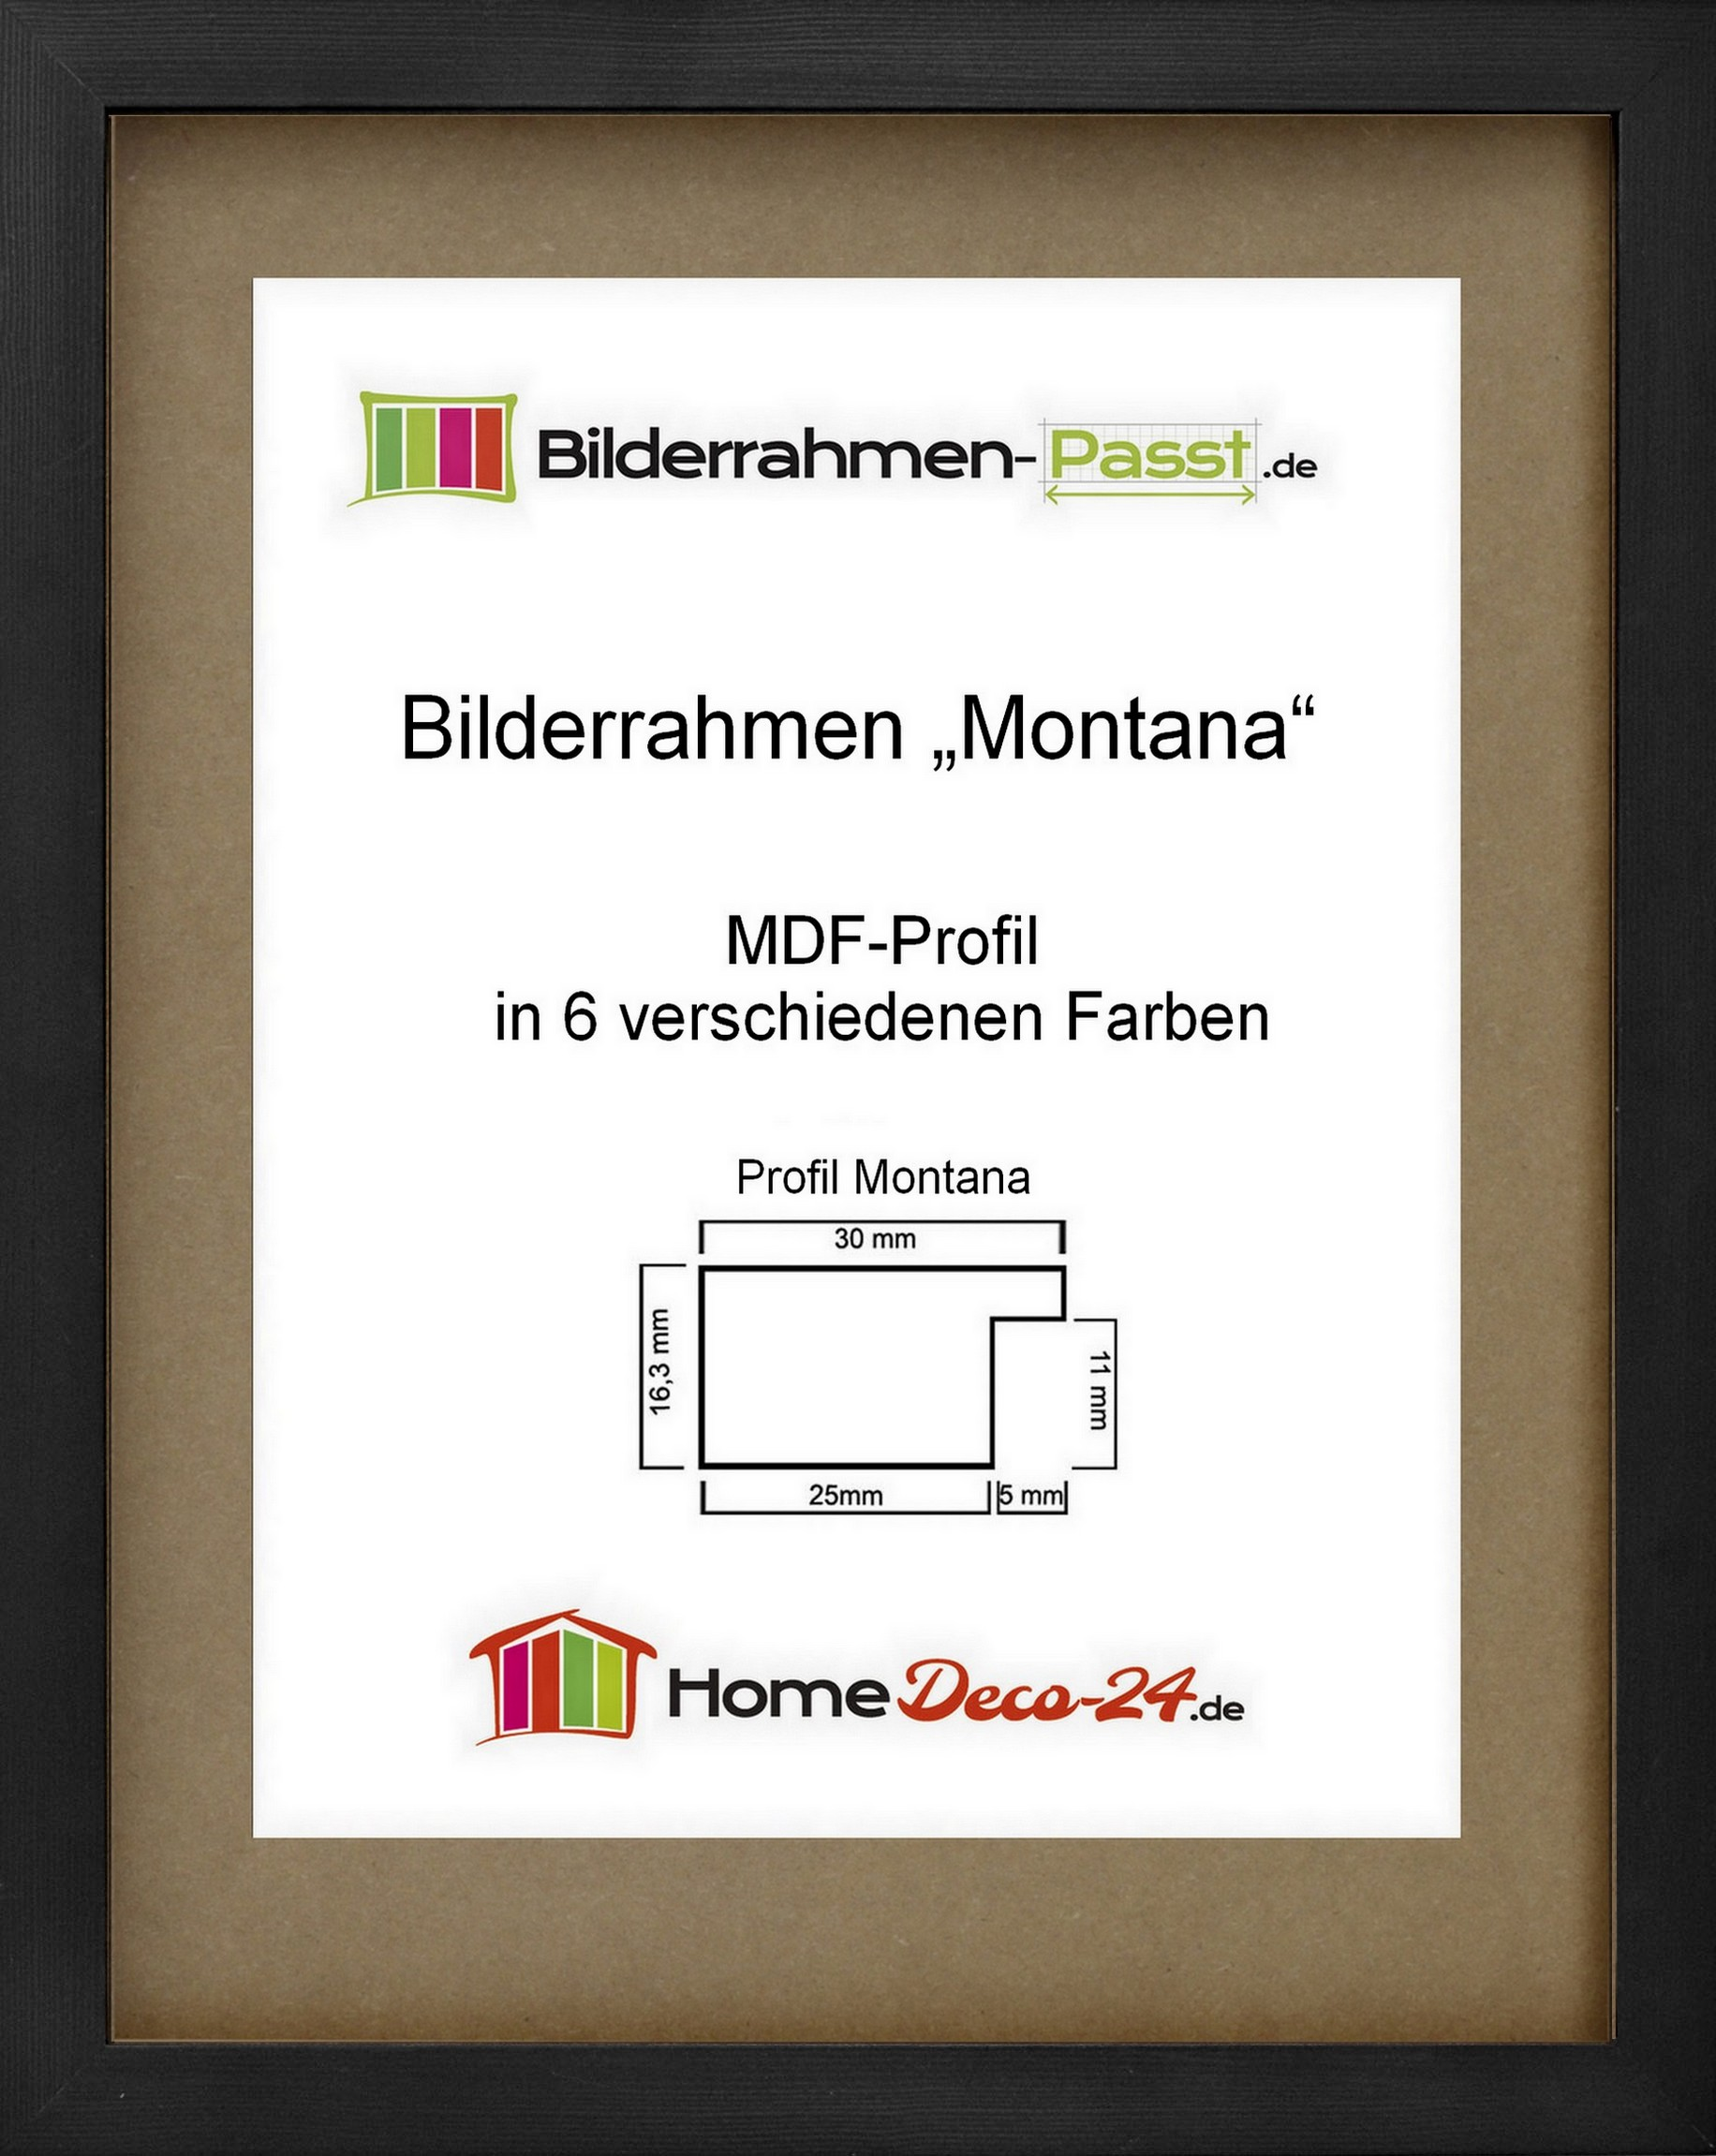 bilderrahmen montana acrylglas klar wahl farbe und gr e poster rahmen modern ebay. Black Bedroom Furniture Sets. Home Design Ideas